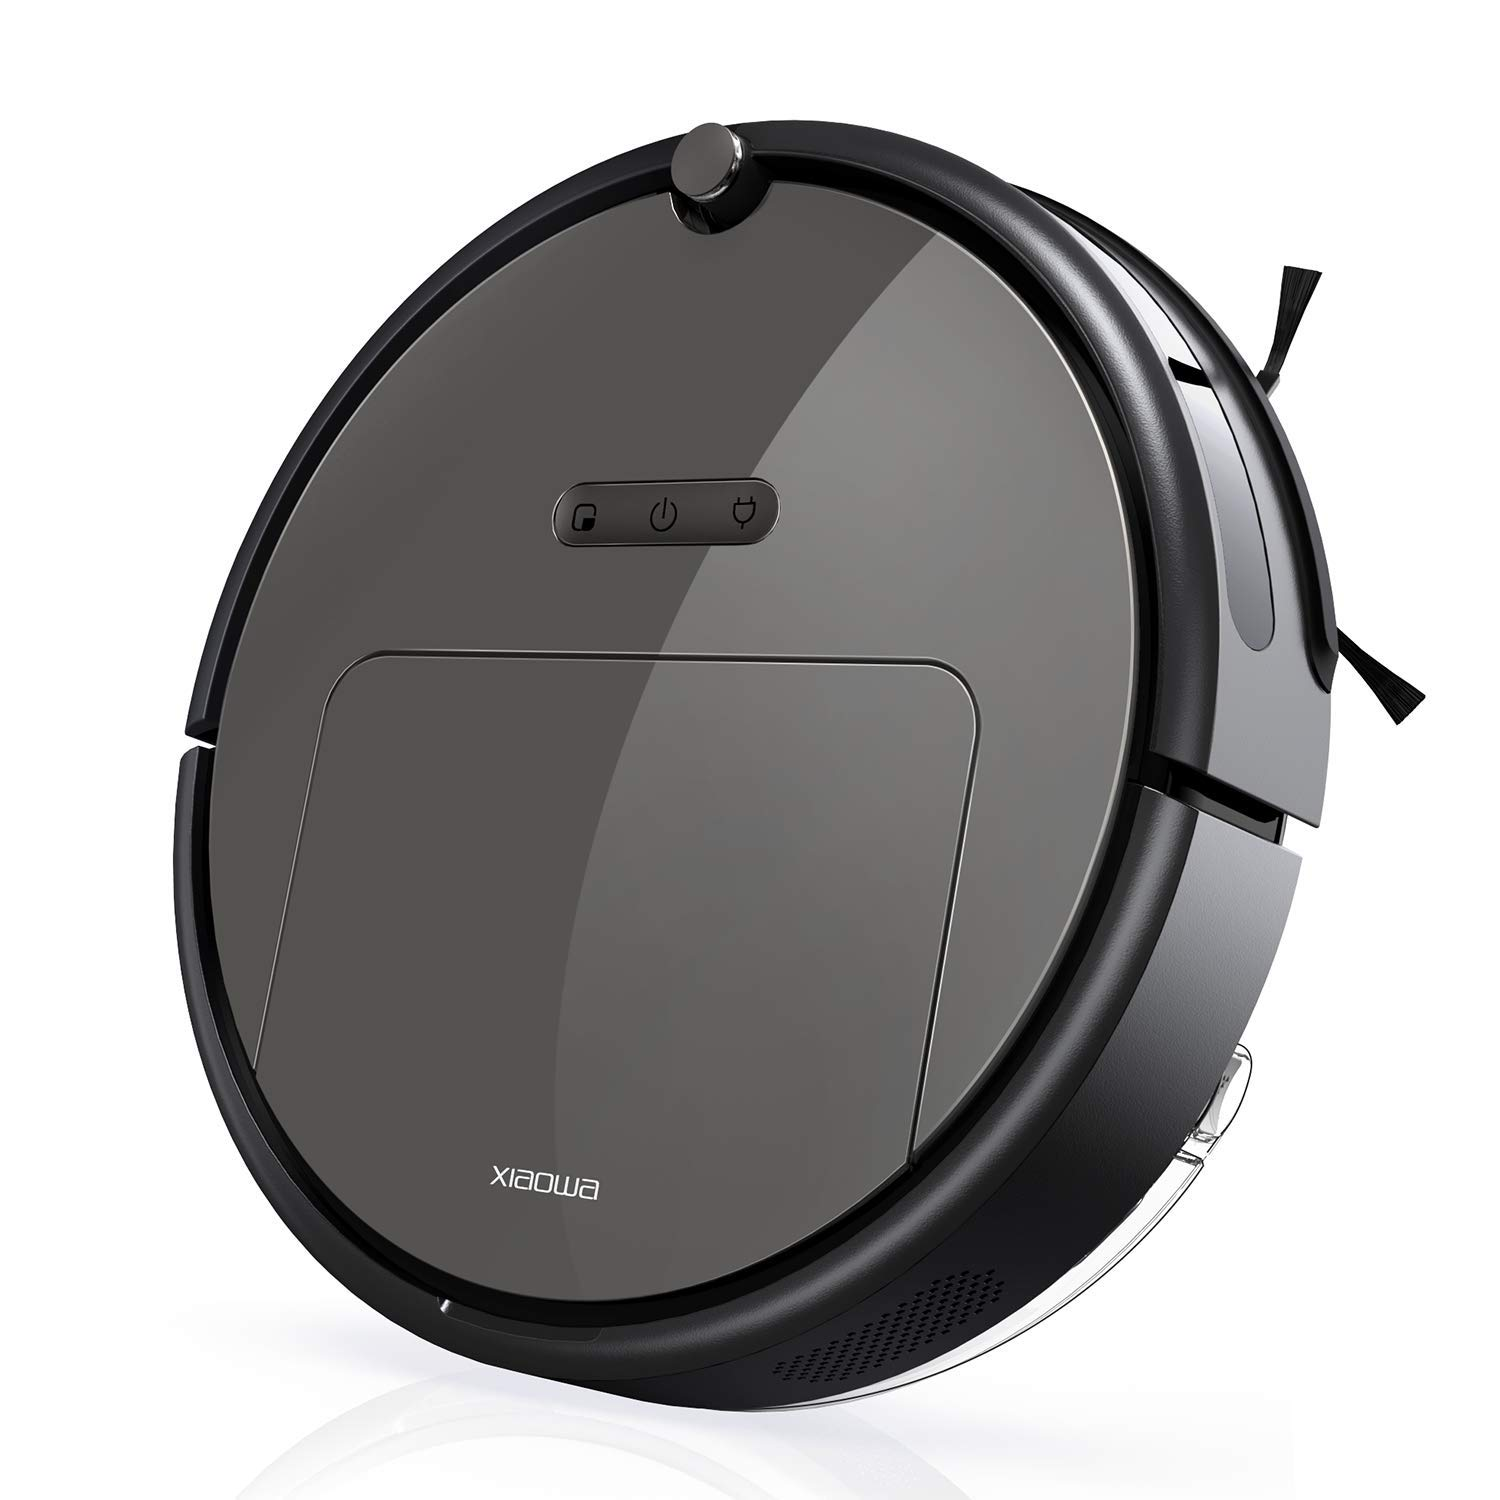 Roborock E25 Robot Vacuum Cleaner Sweeping and Mopping Robotic Vacuum Cleaning Dust and Pet Hair, 1800Pa Strong Suction and App Control, Route Planning on Hard Floor, Carpet and All Floor Types